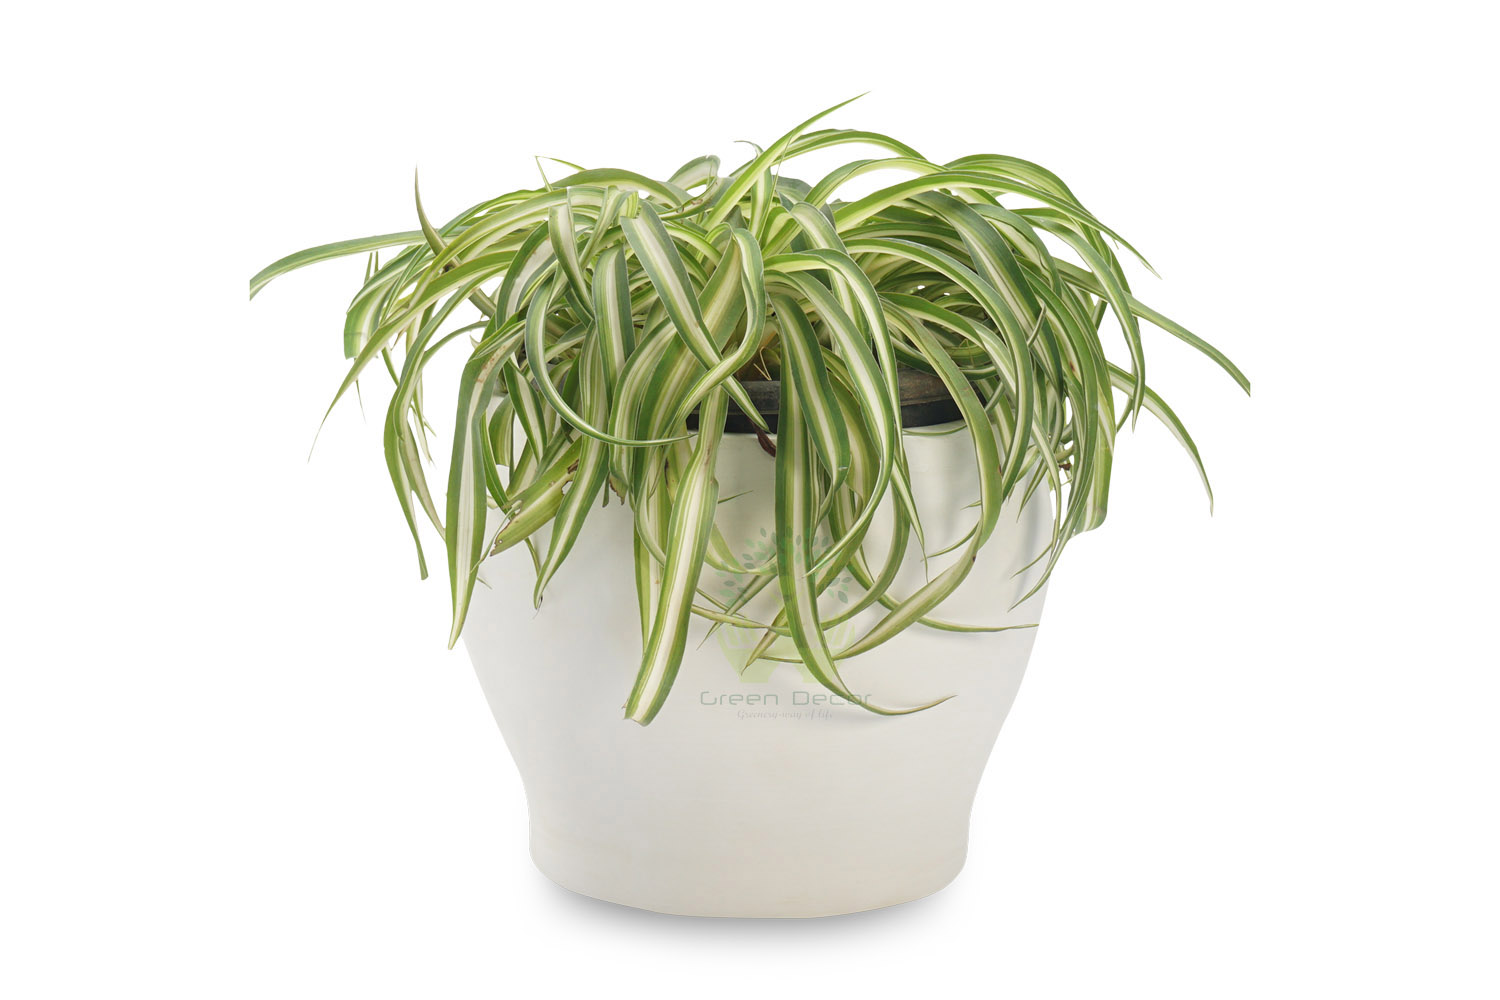 Buy Spider Plants , White Pots and seeds in Delhi NCR by the best online nursery shop Greendecor.